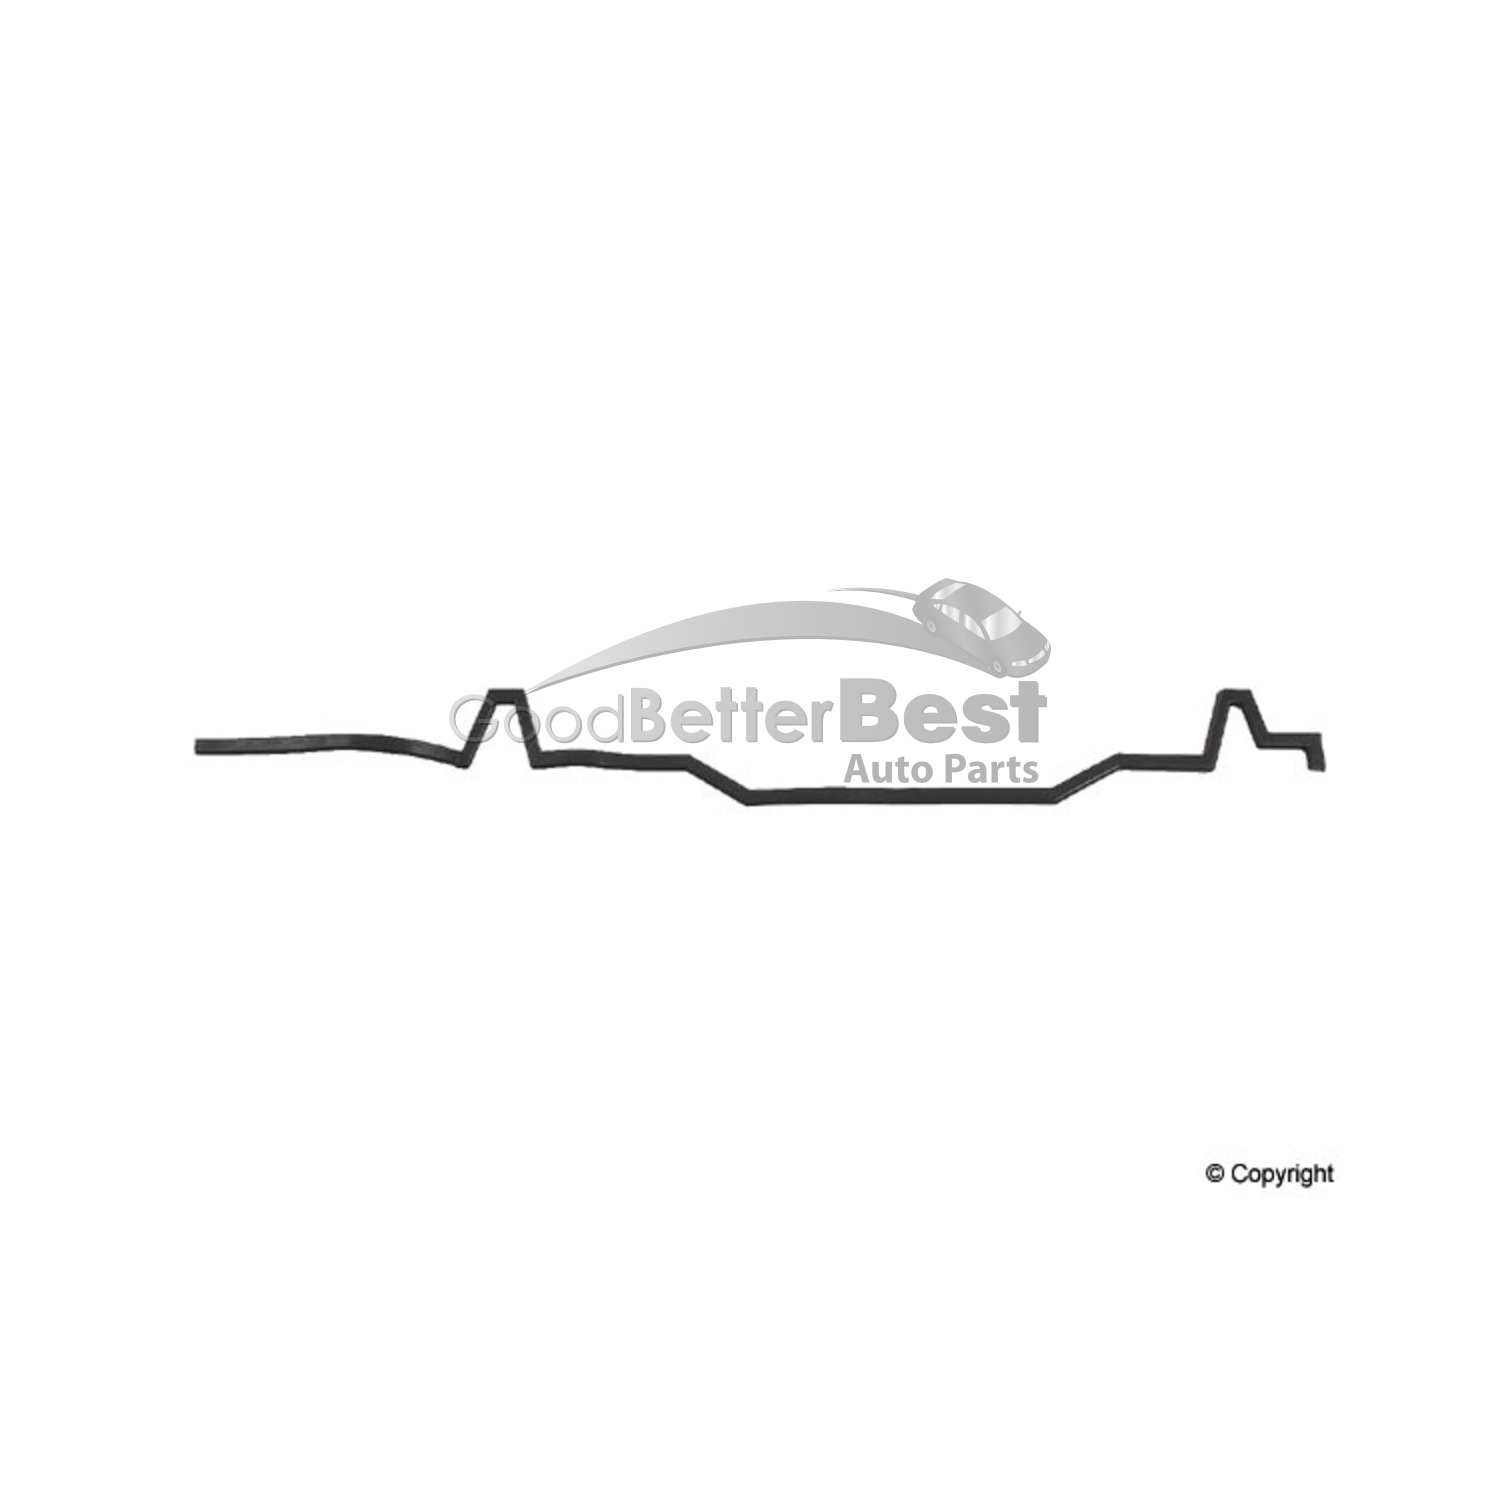 Acura 11831-PR3-000 Engine Timing Cover Gasket